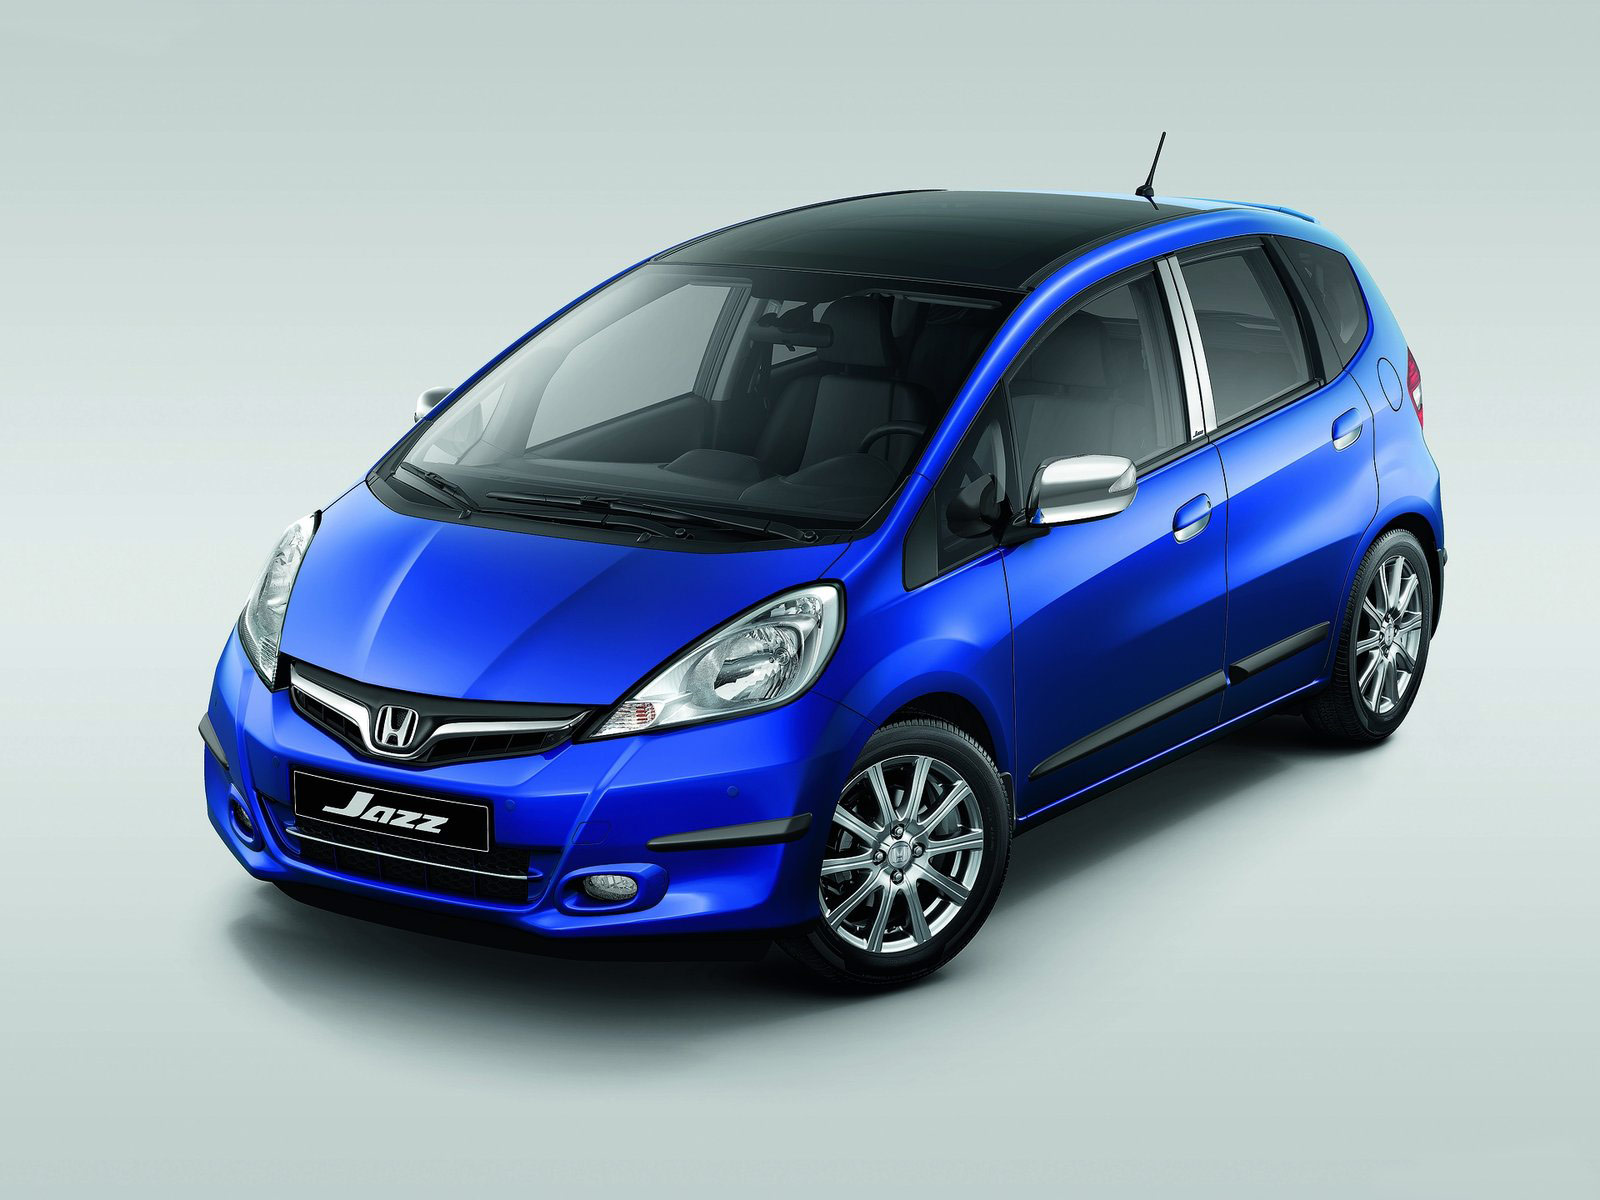 Honda Jazz 2011 Japanese Car Photos Accident Lawyers Info